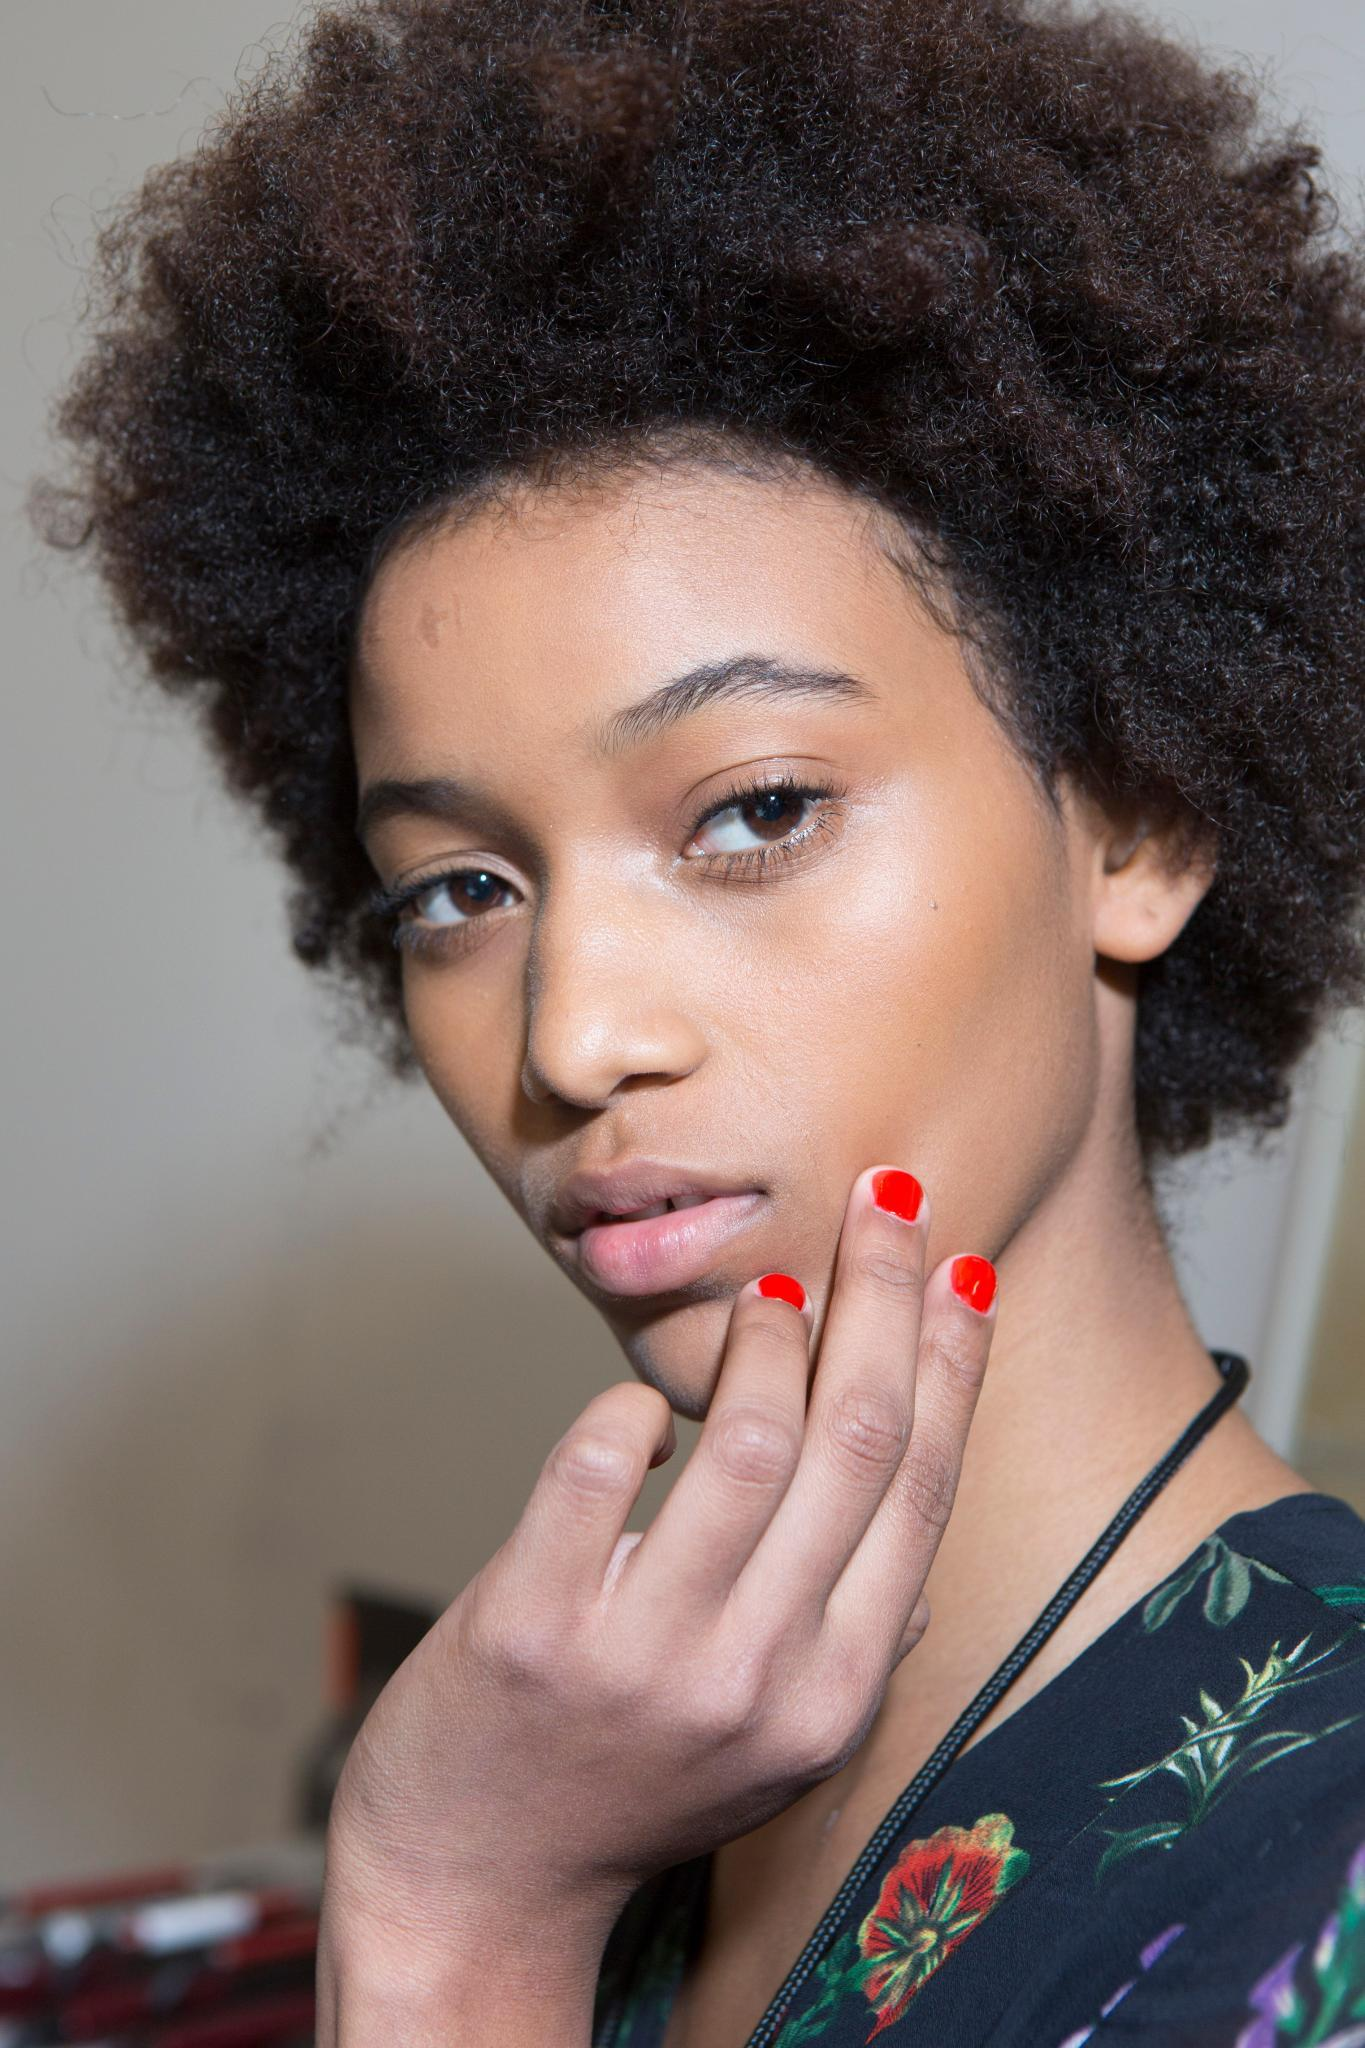 Detangling natural hair guide: Backstage shot of model with natural hair, with red nails and smiling